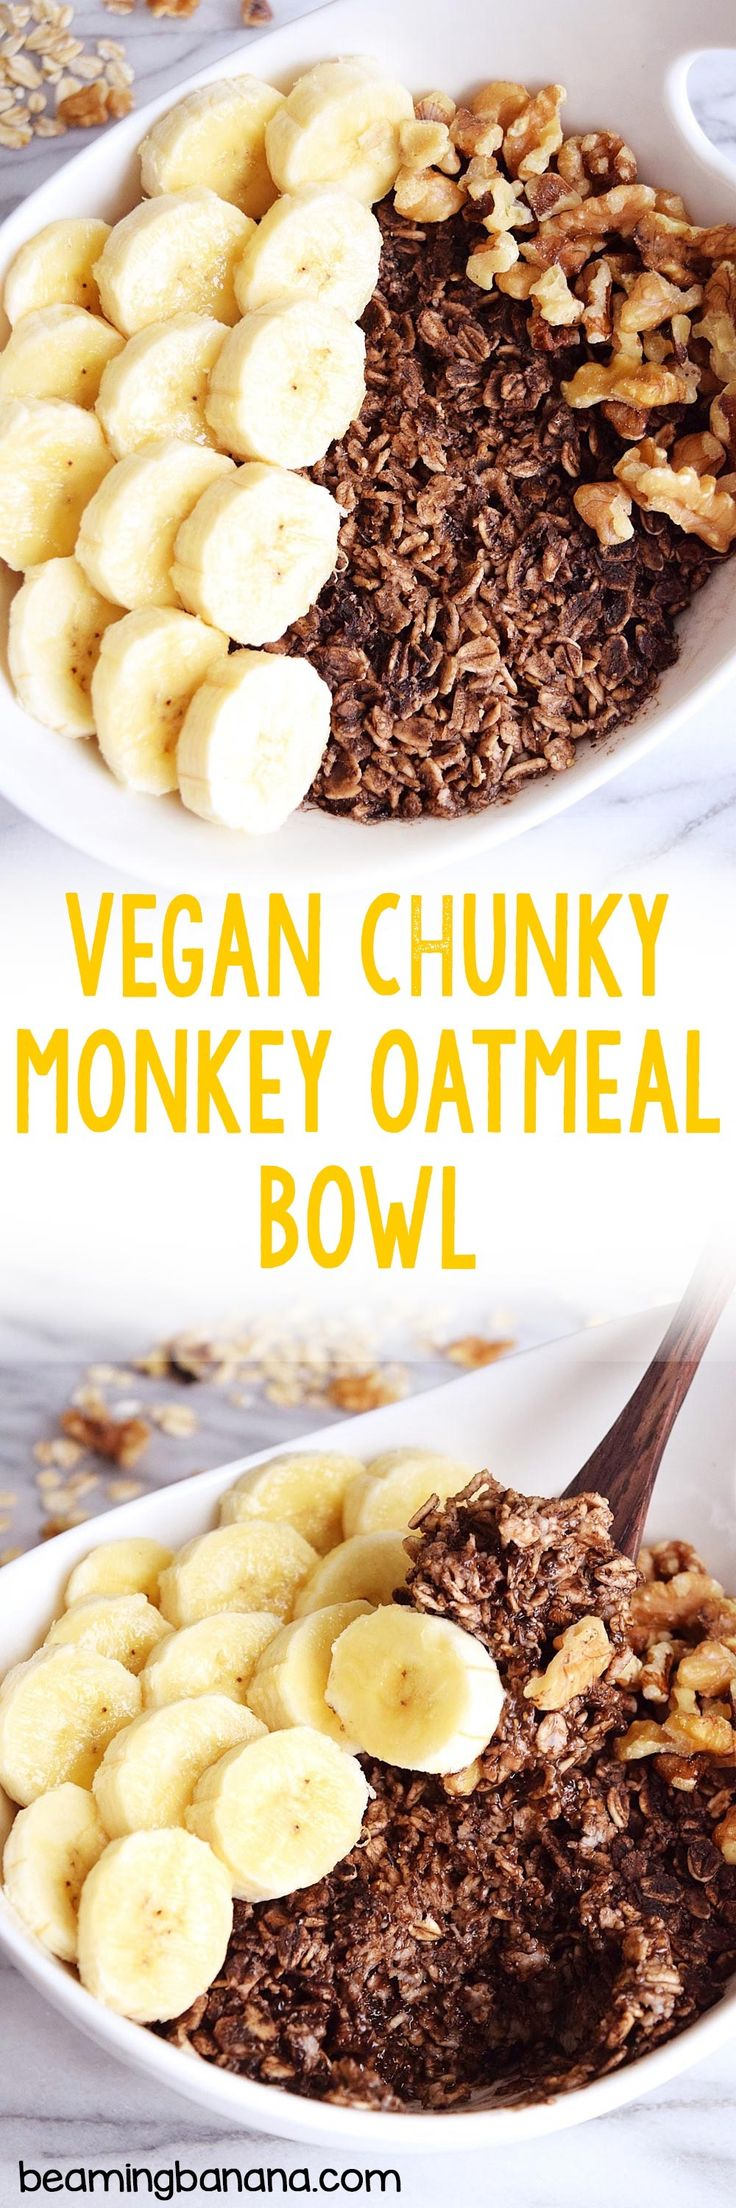 This vegan chunky monkey oatmeal bowl is a dreamy combination of chocolate, banana, and nuts, all in a healthy, satisfying breakfast bowl!